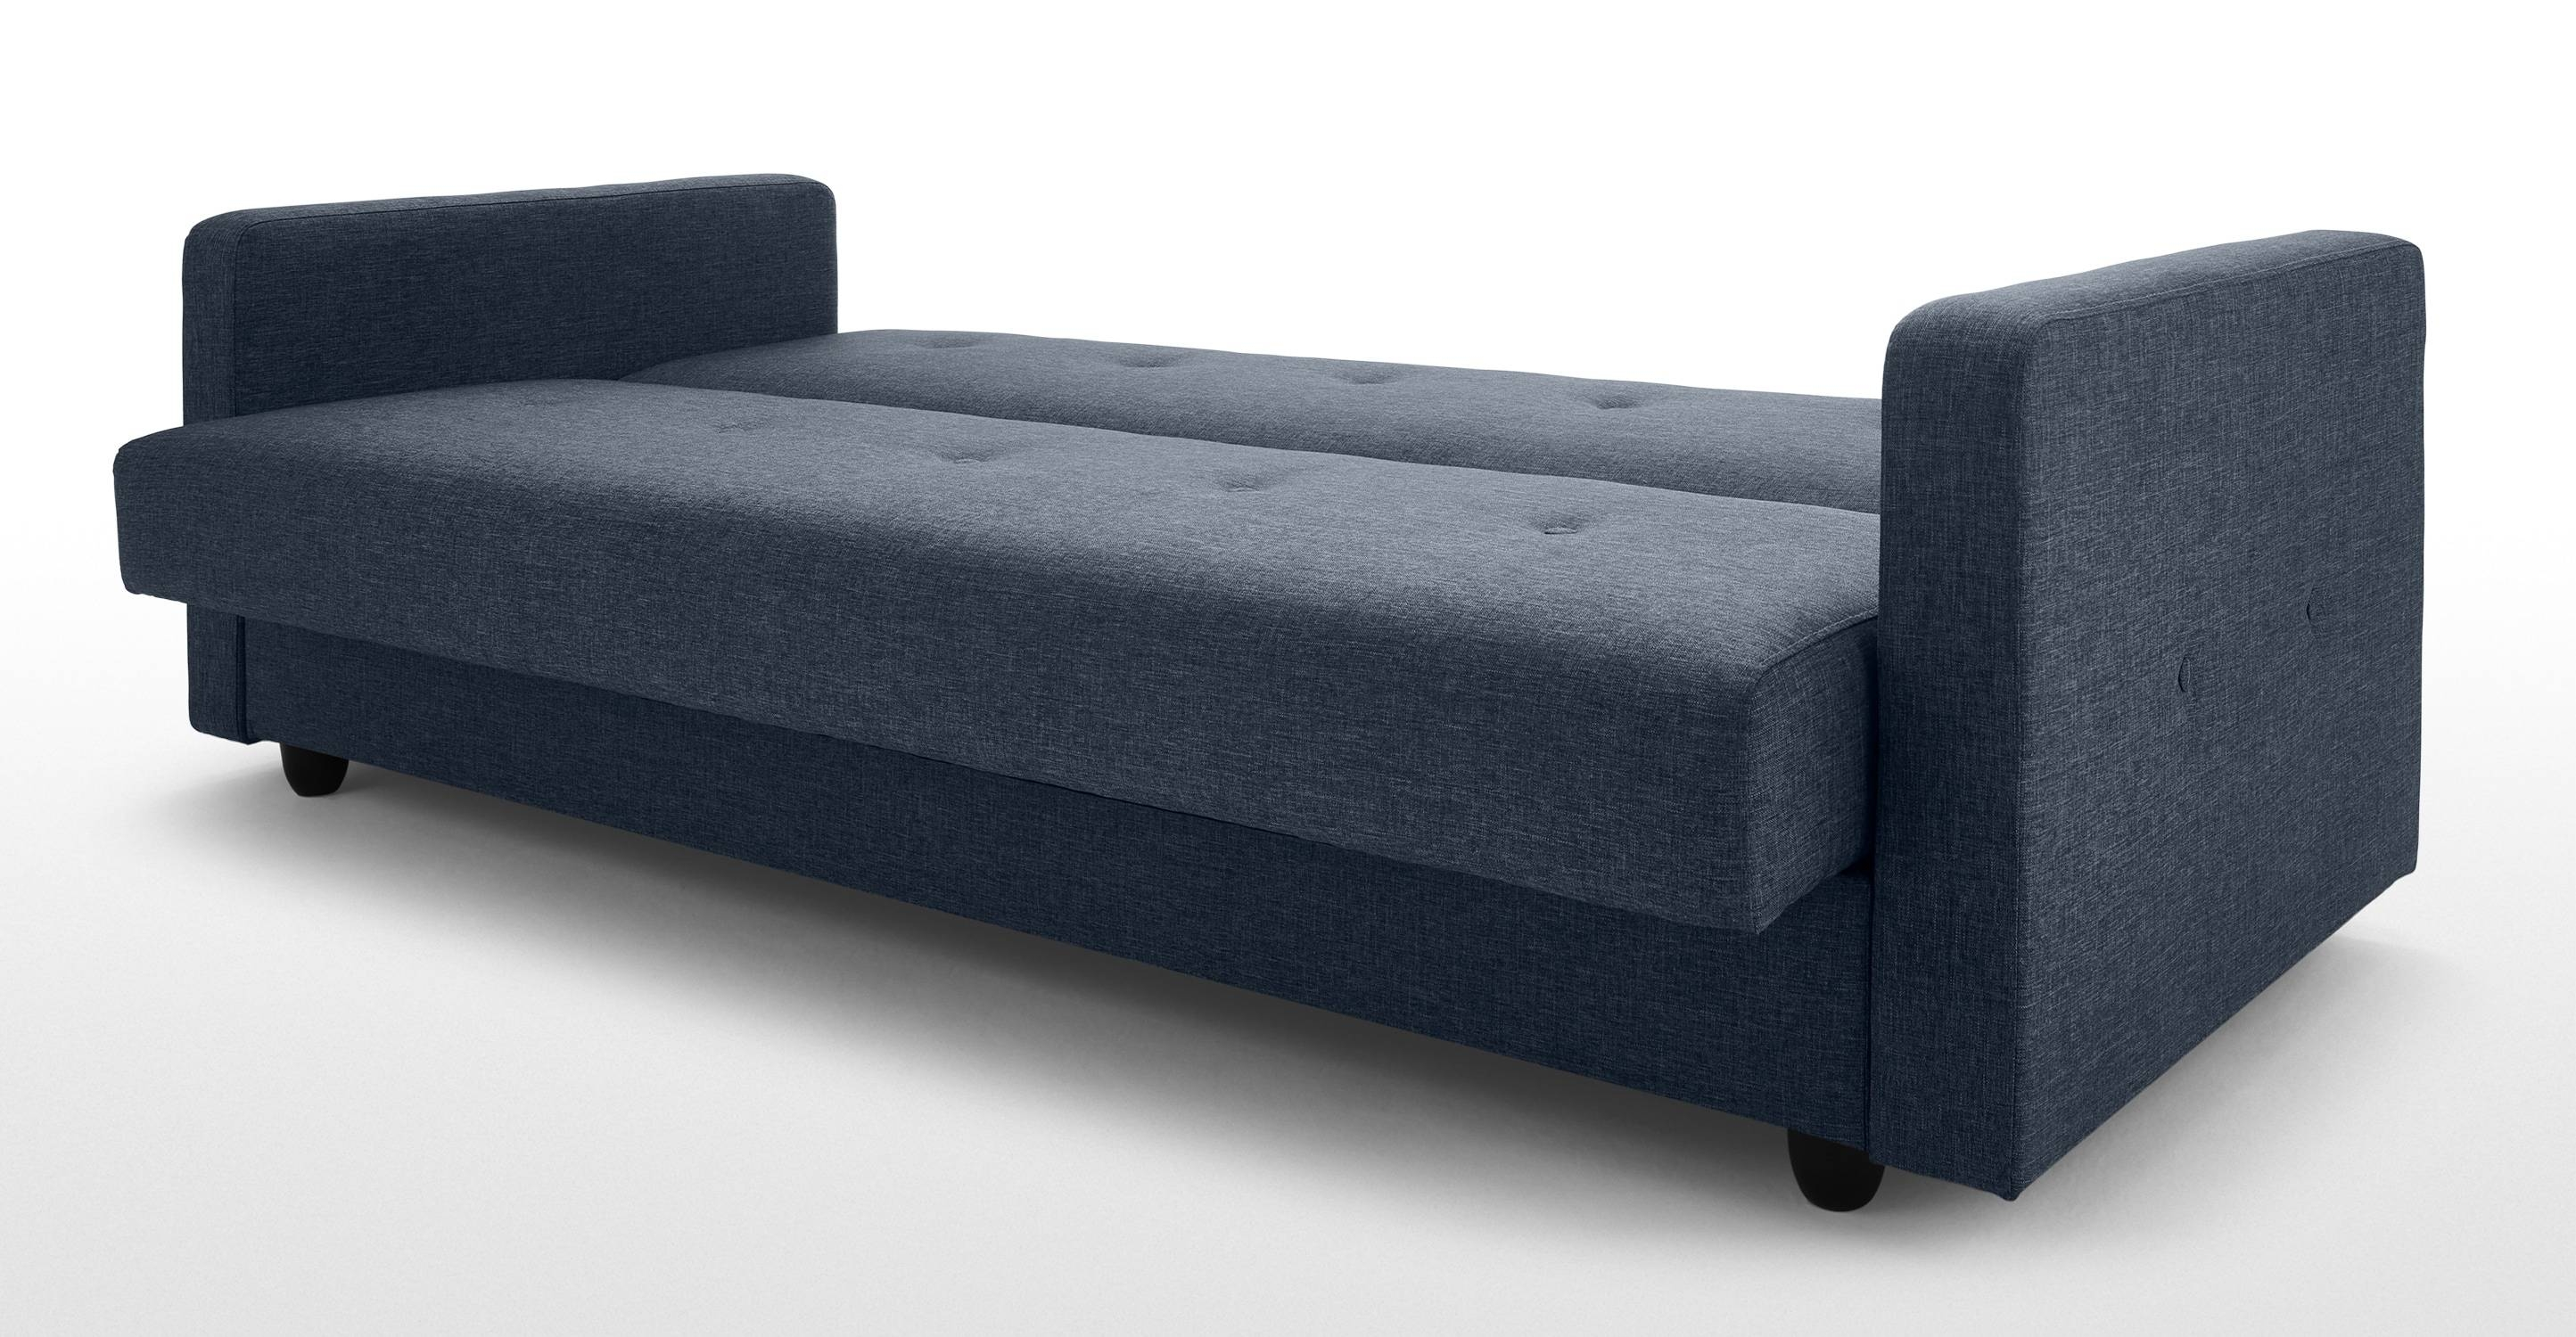 Chou Sofa Bed With Storage, Quartz Blue | Made with regard to Sofa Beds With Storages (Image 8 of 30)